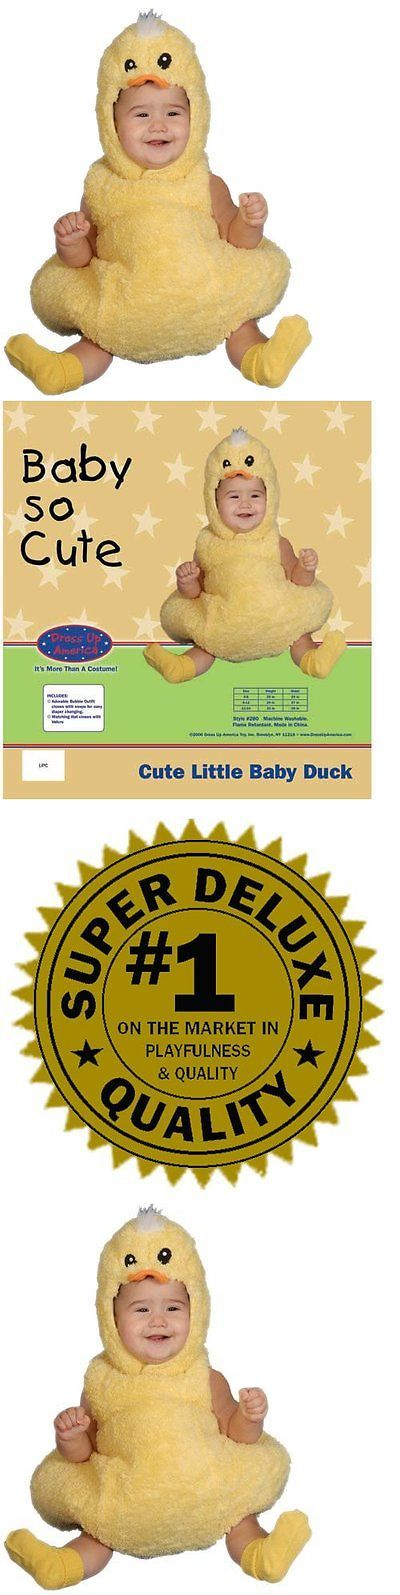 Kids Costumes: Cute Little Baby Duck Costume Set - Size 0-6 Mo. BUY IT NOW ONLY: $41.67